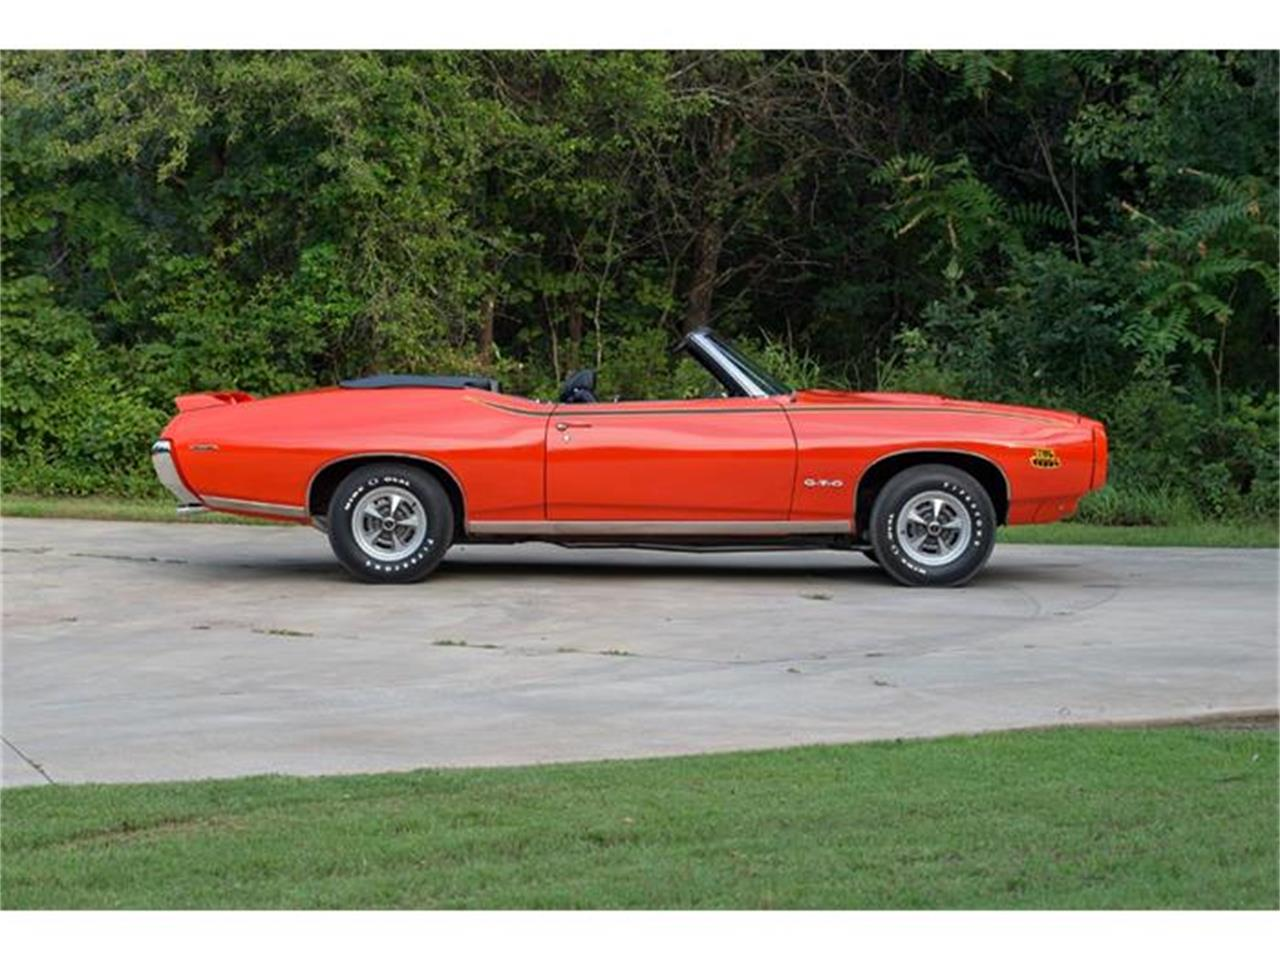 Large Picture of Classic '69 Pontiac GTO (The Judge) located in Texas - $179,000.00 Offered by Texas Trucks and Classics - H937